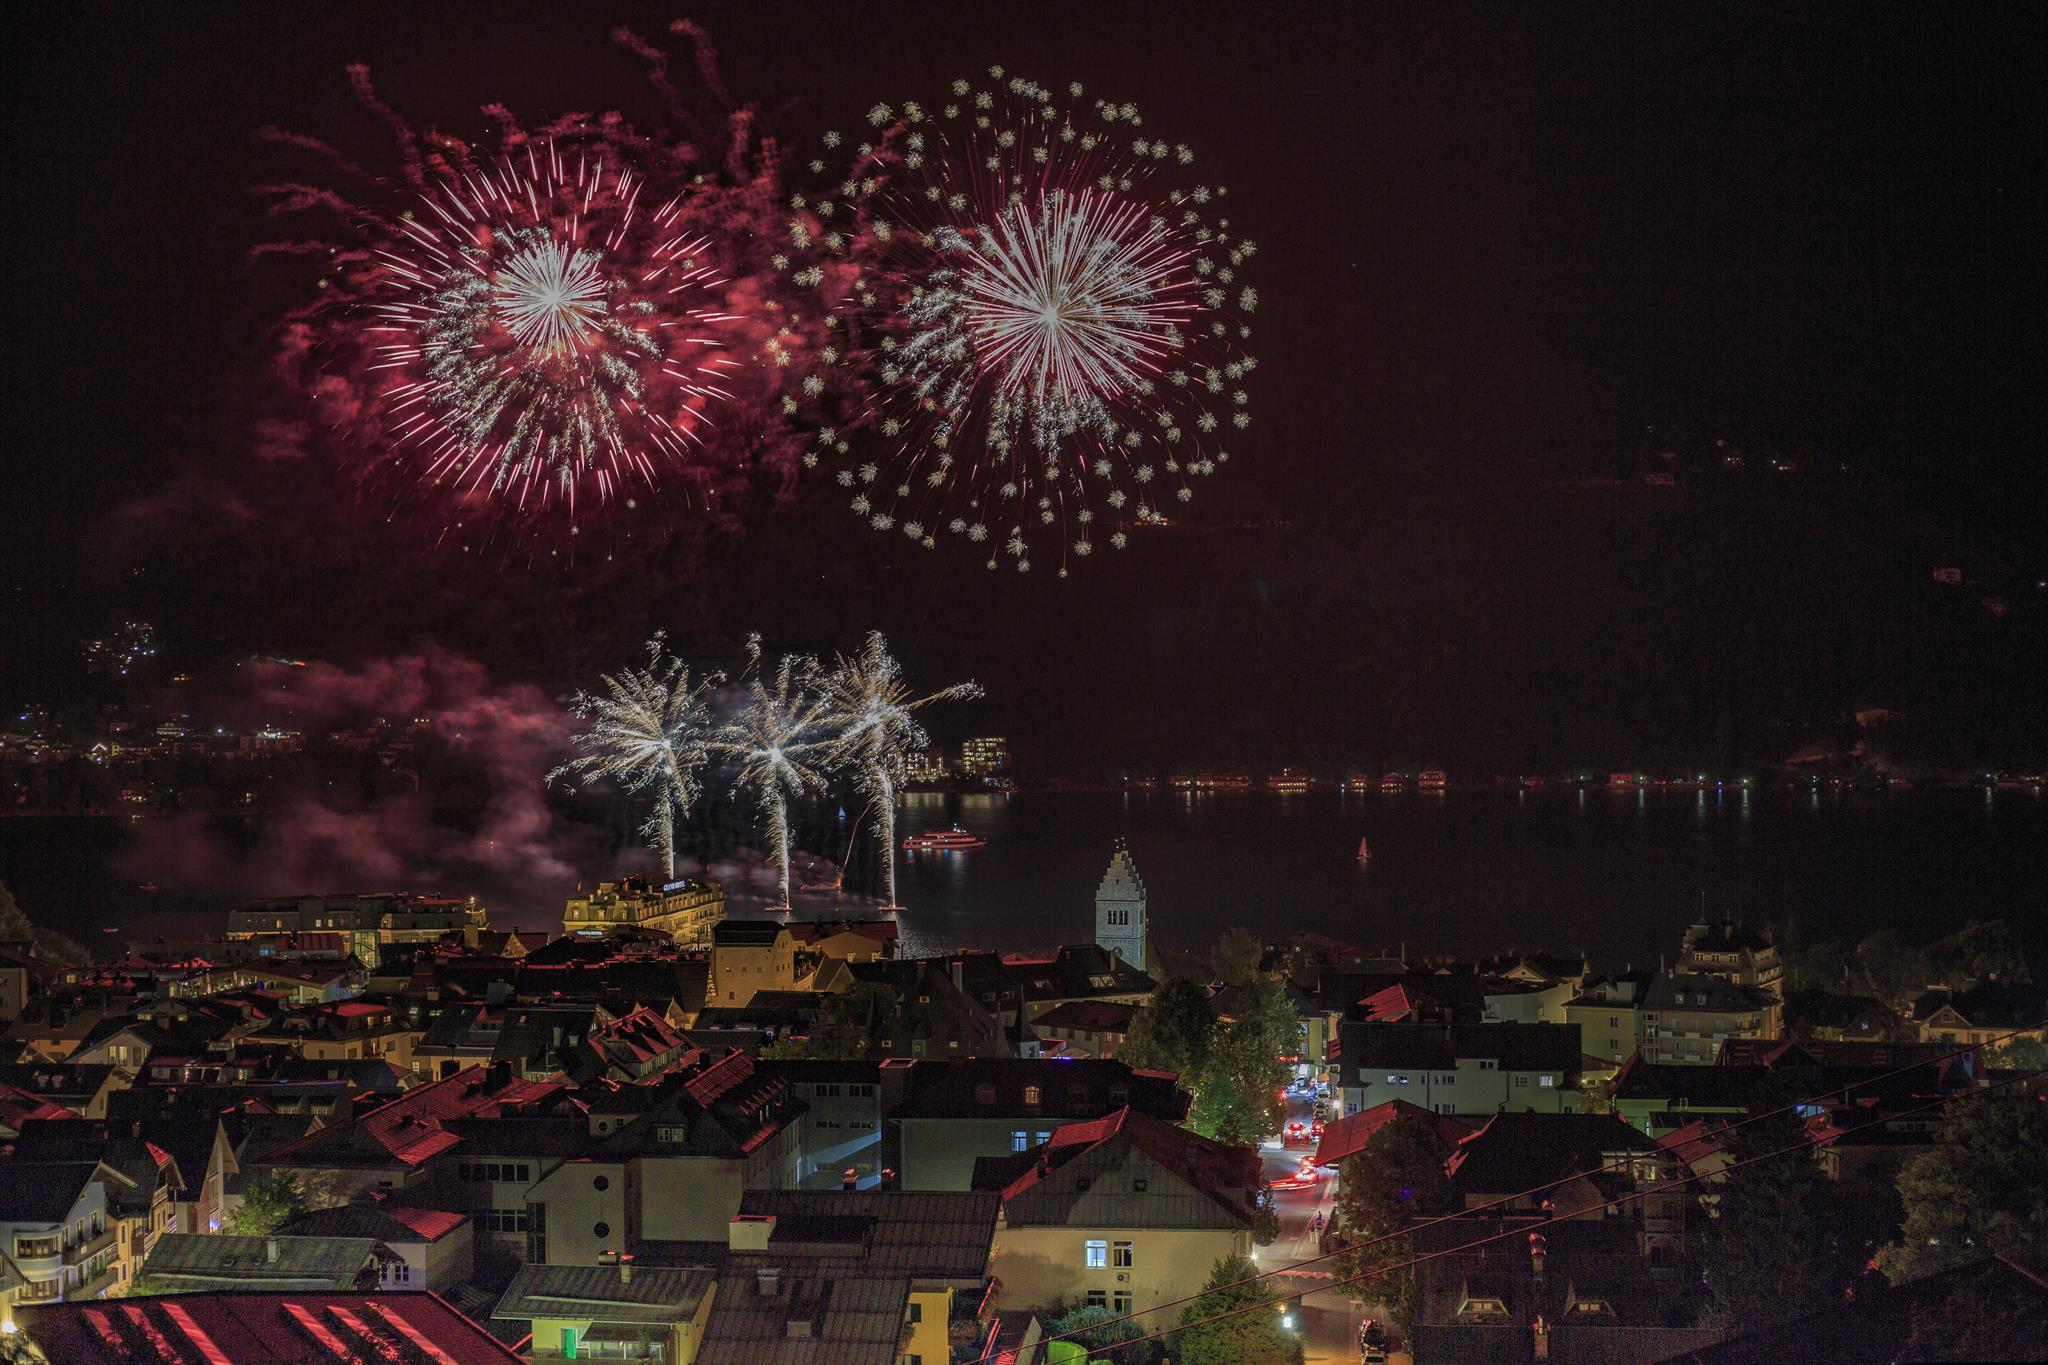 1st Zell Lake Festival with fireworks cruise - 13/07/2019, from 9:00 PM